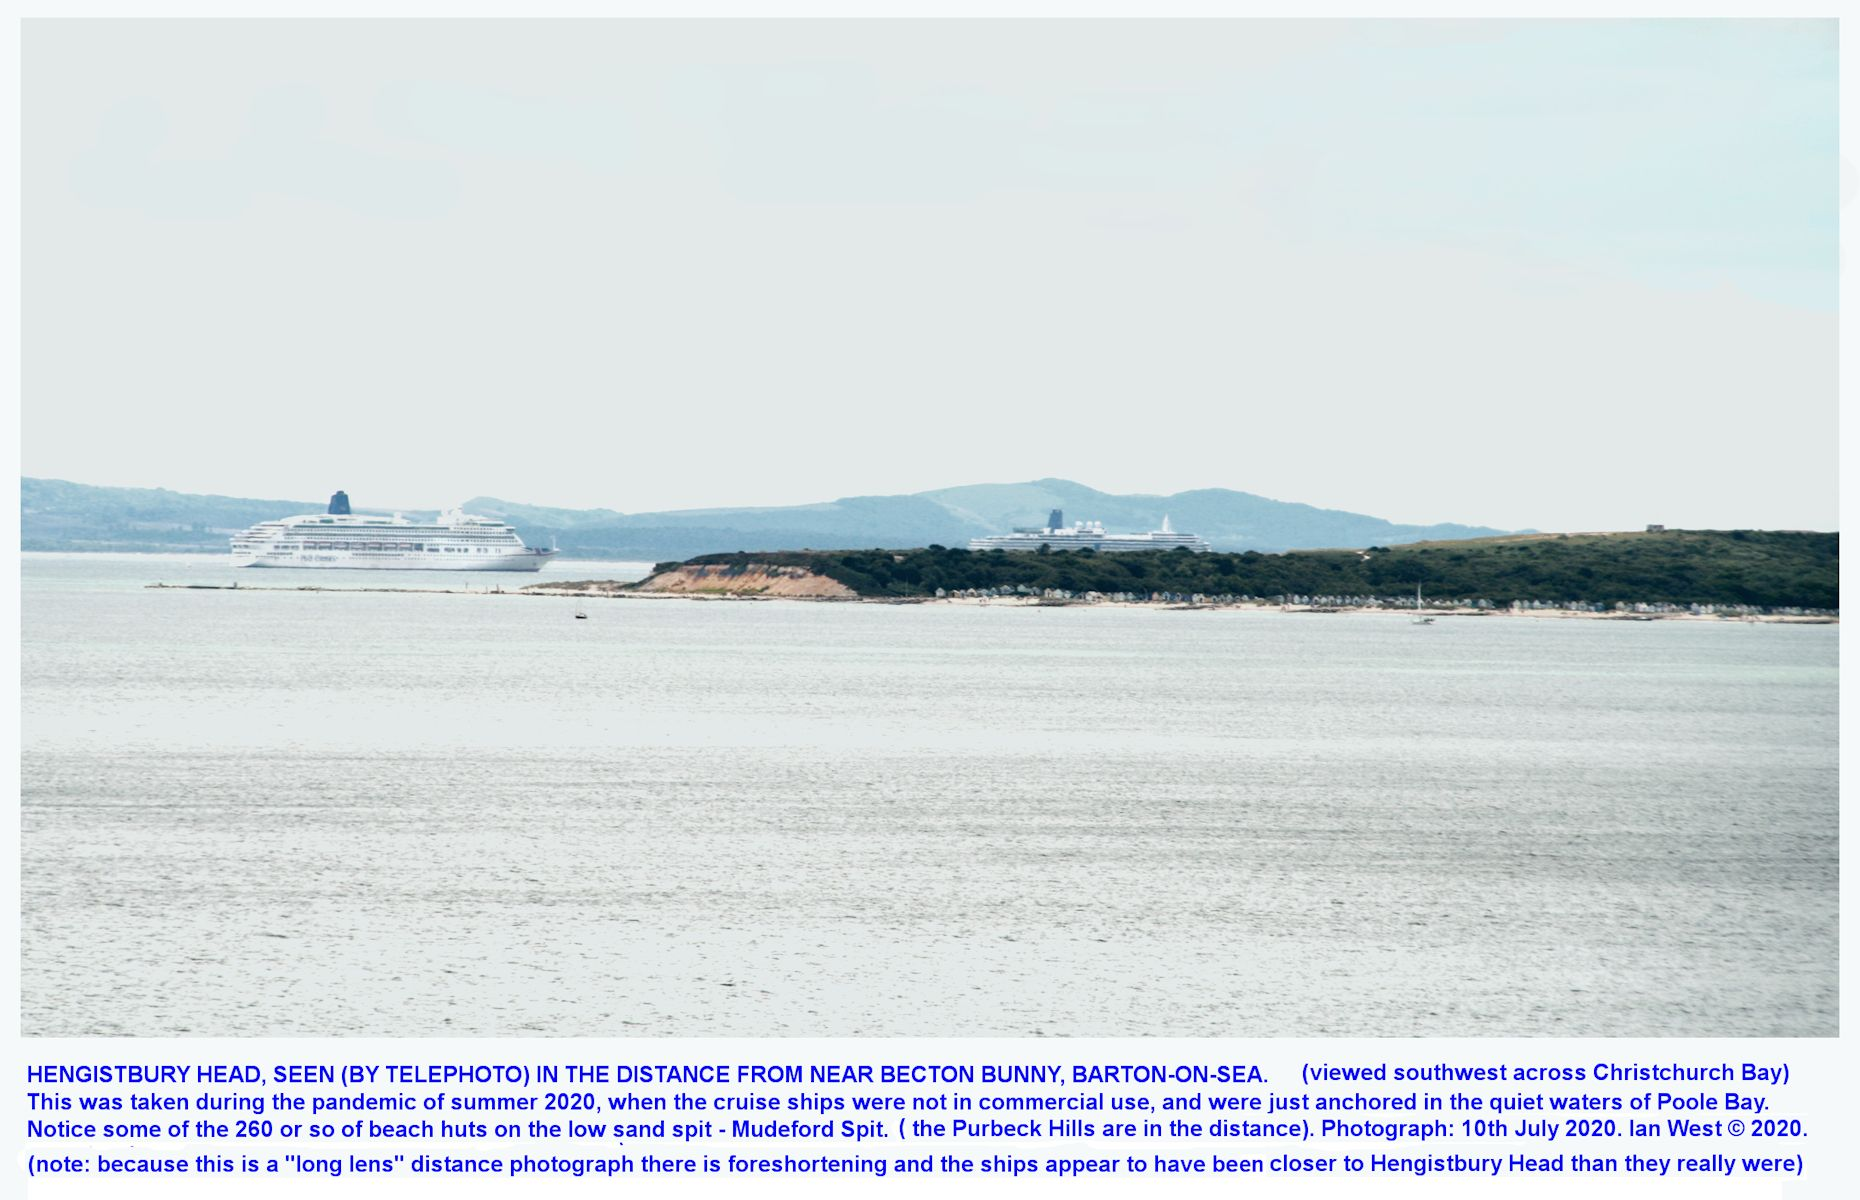 Cruise ships, not in use because of the Coronavirus pandemic in July 2020, and temporarily anchored in Poole Bay, not far from Hengistbury Head